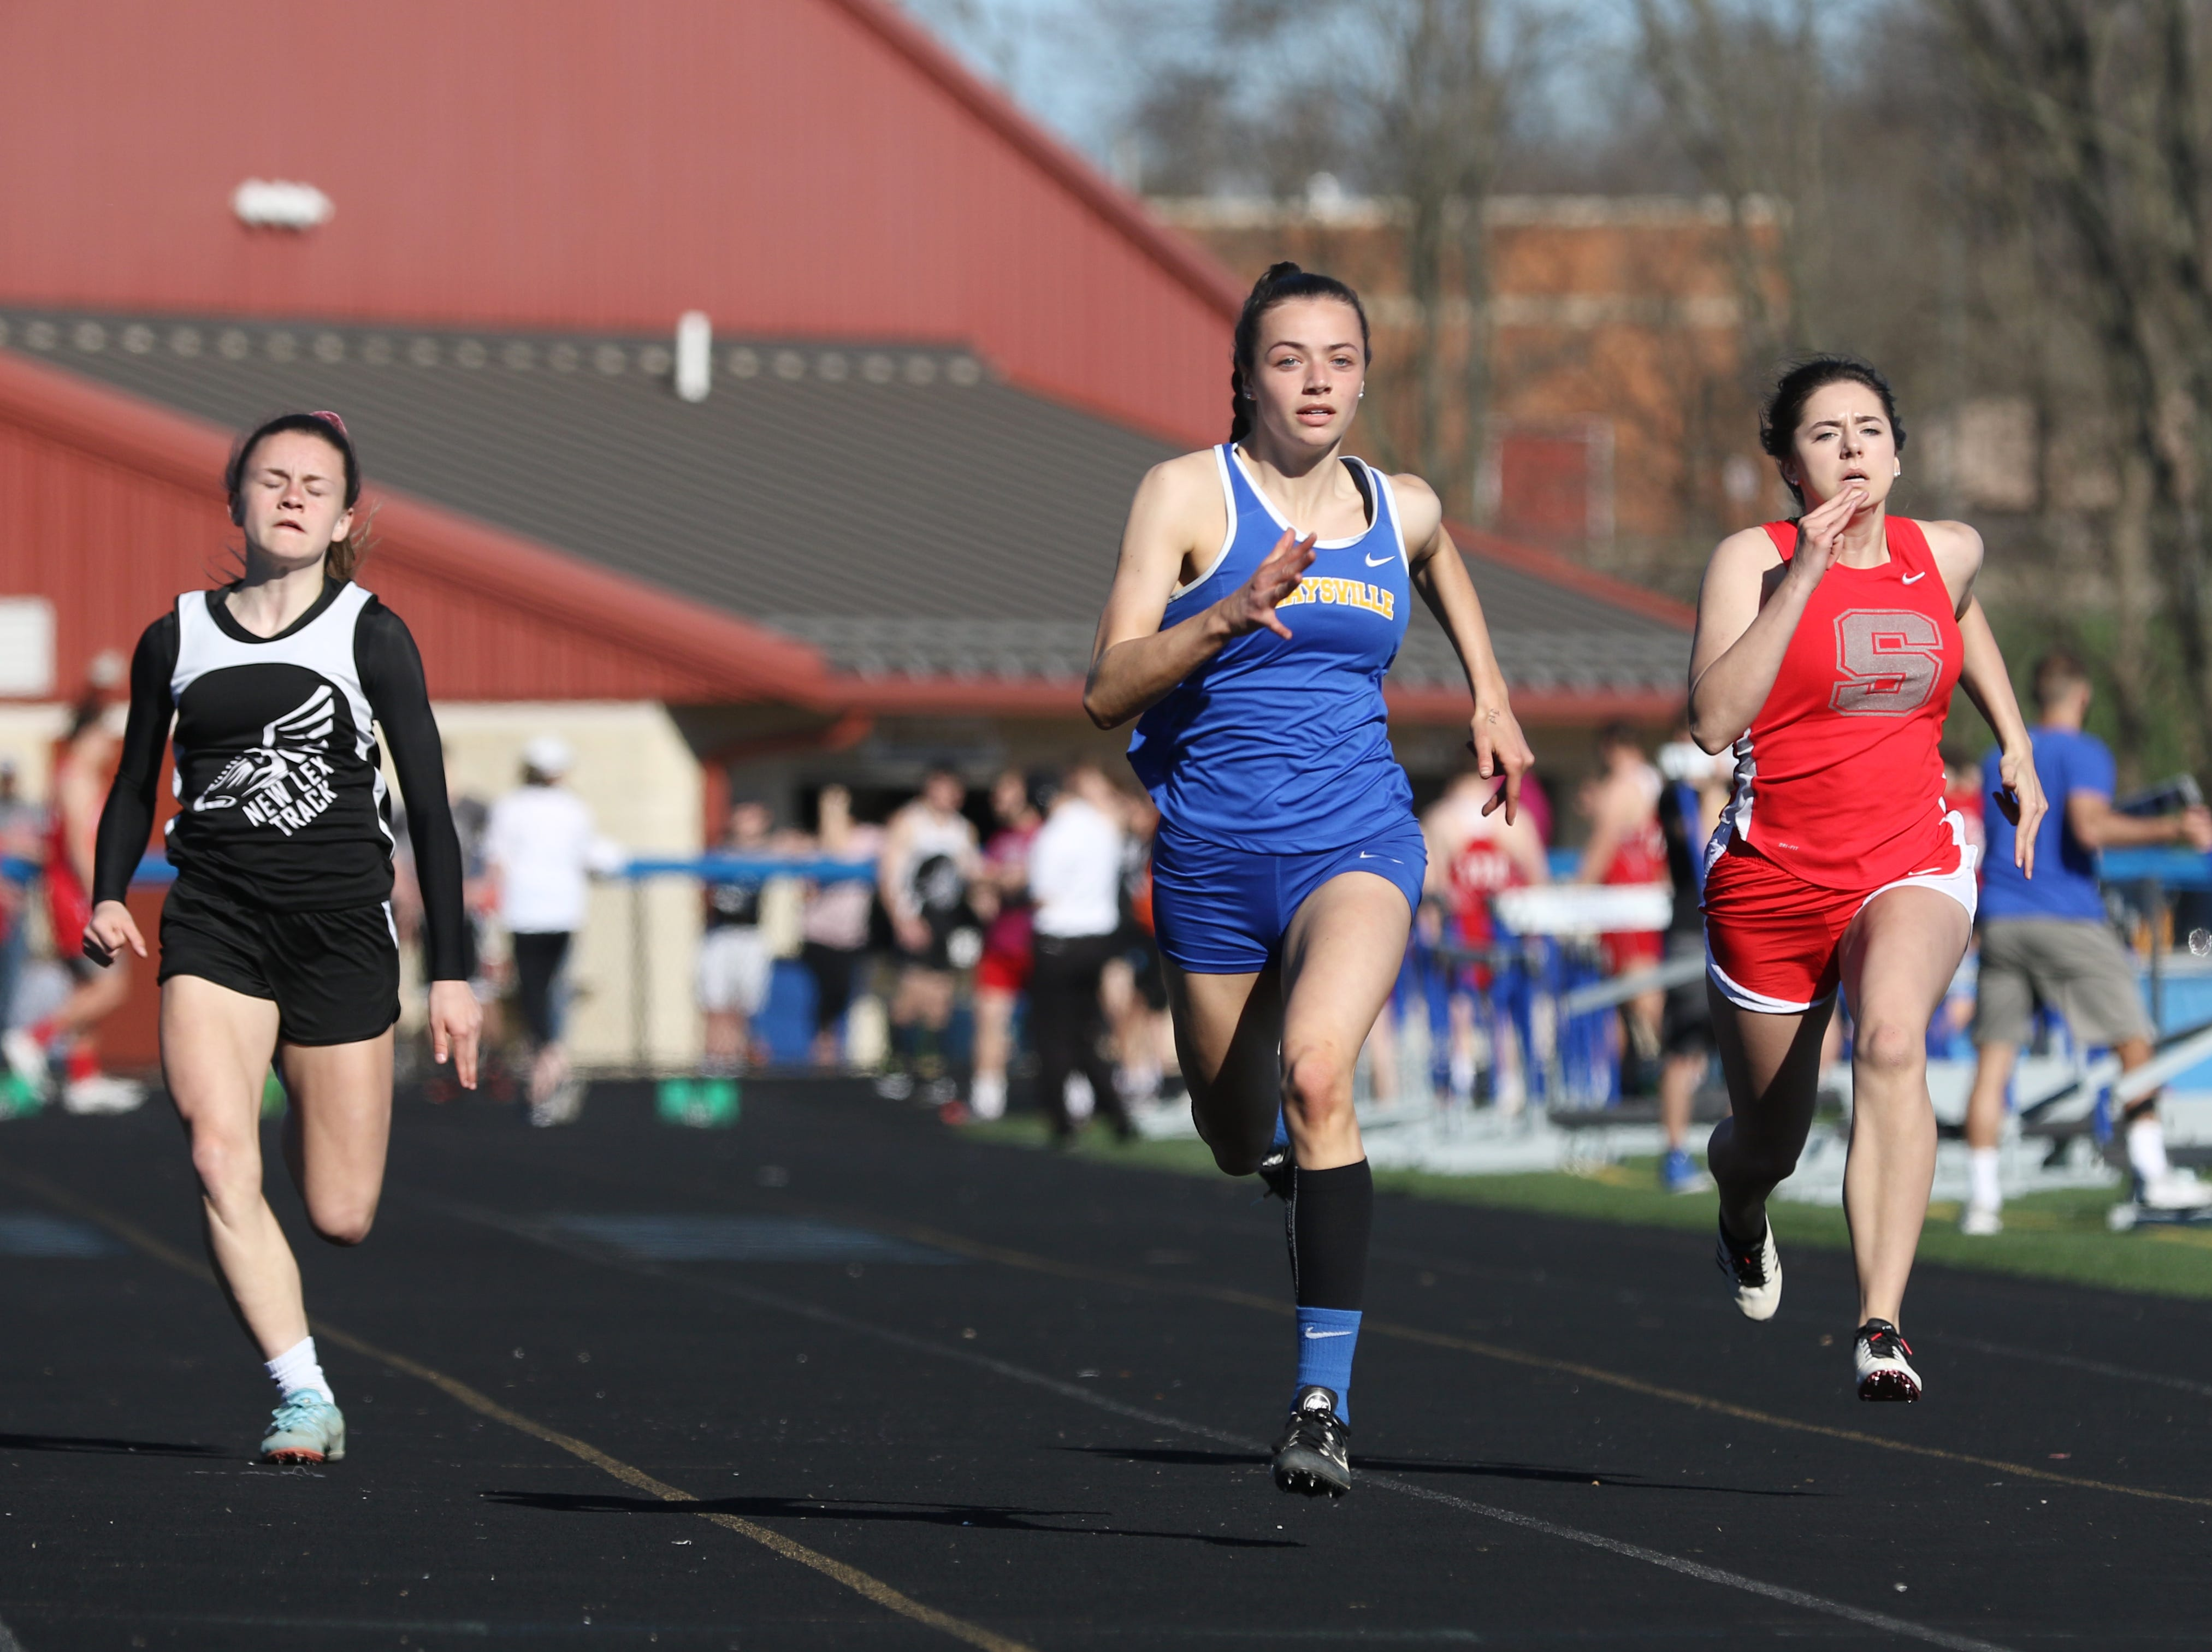 Maysville's Paige Webb wins her heat of the 100 meter dash during Tuesday's tri-meet between Sheridan, New Lexington and host Maysville.